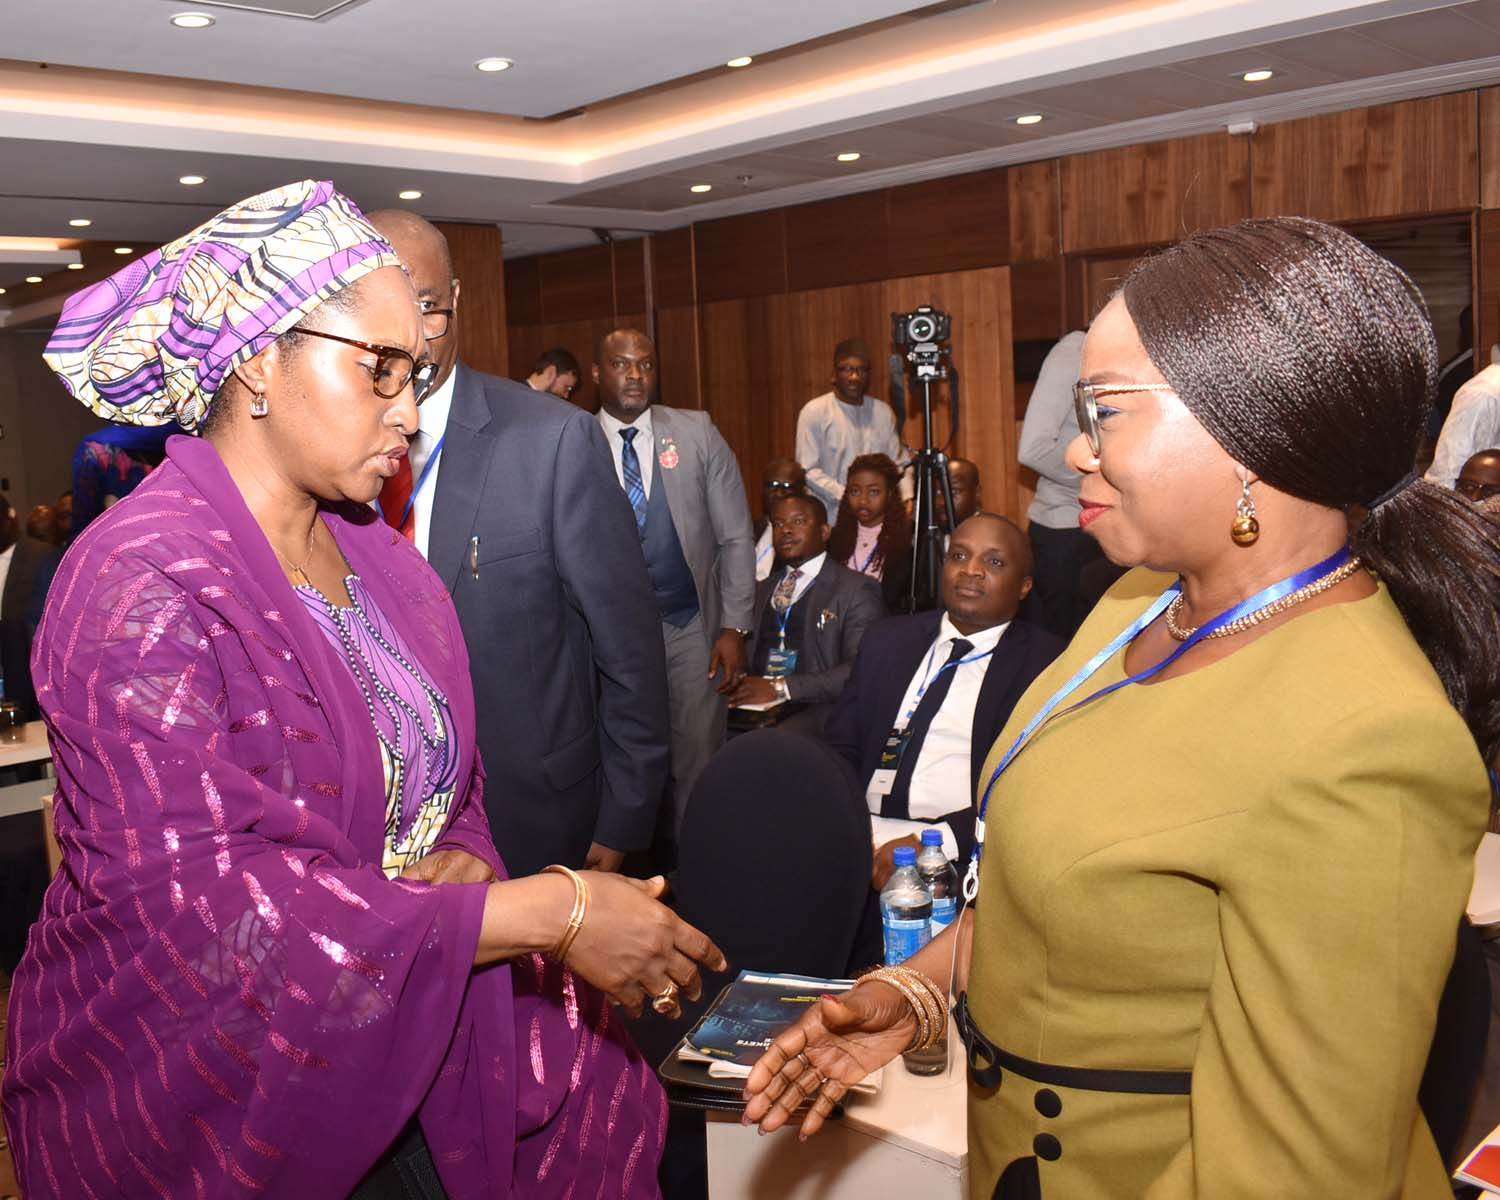 Minister of Finance Hajia Zainab Ahmed  with Acting Director General, Securities and Exchange Commission  Ms Mary Uduk during the Investing and Capital Markets Conference in Abuja, Thursday